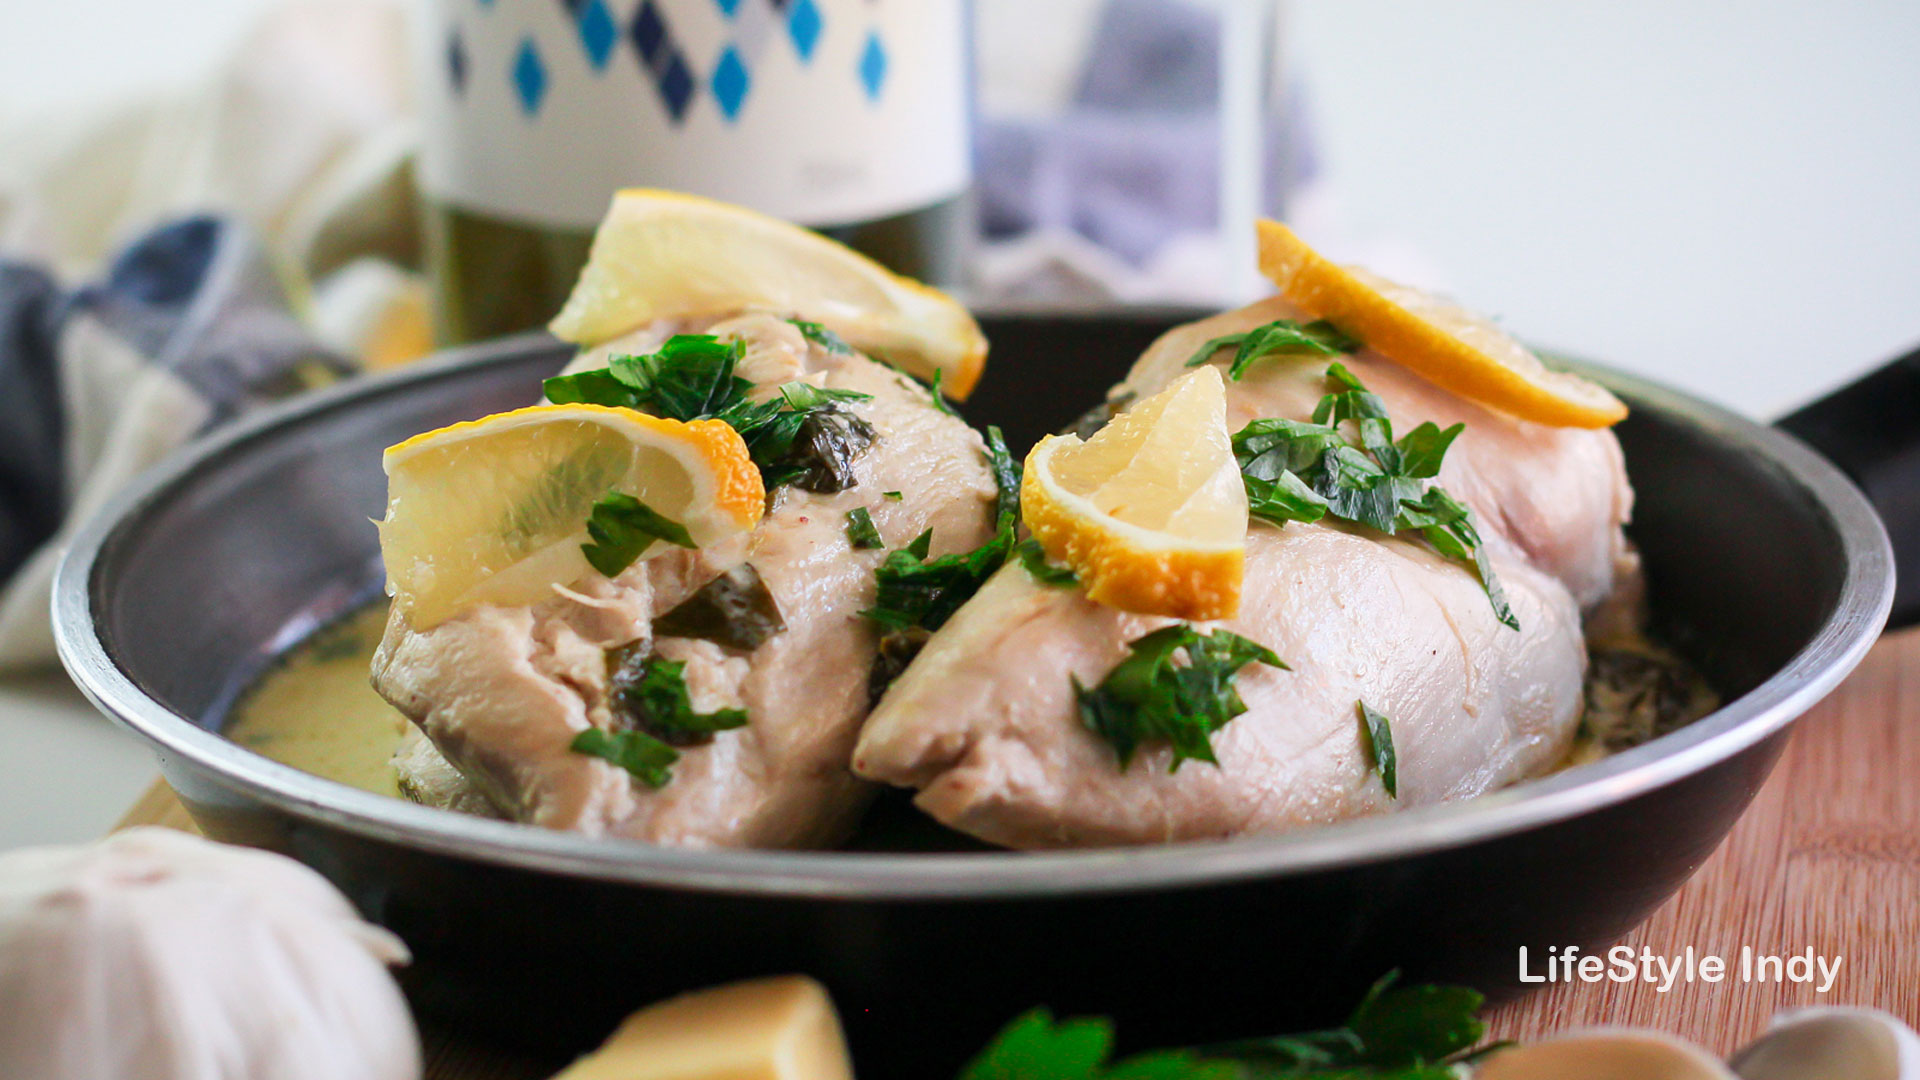 Recipes for Spring Mood - Chicken